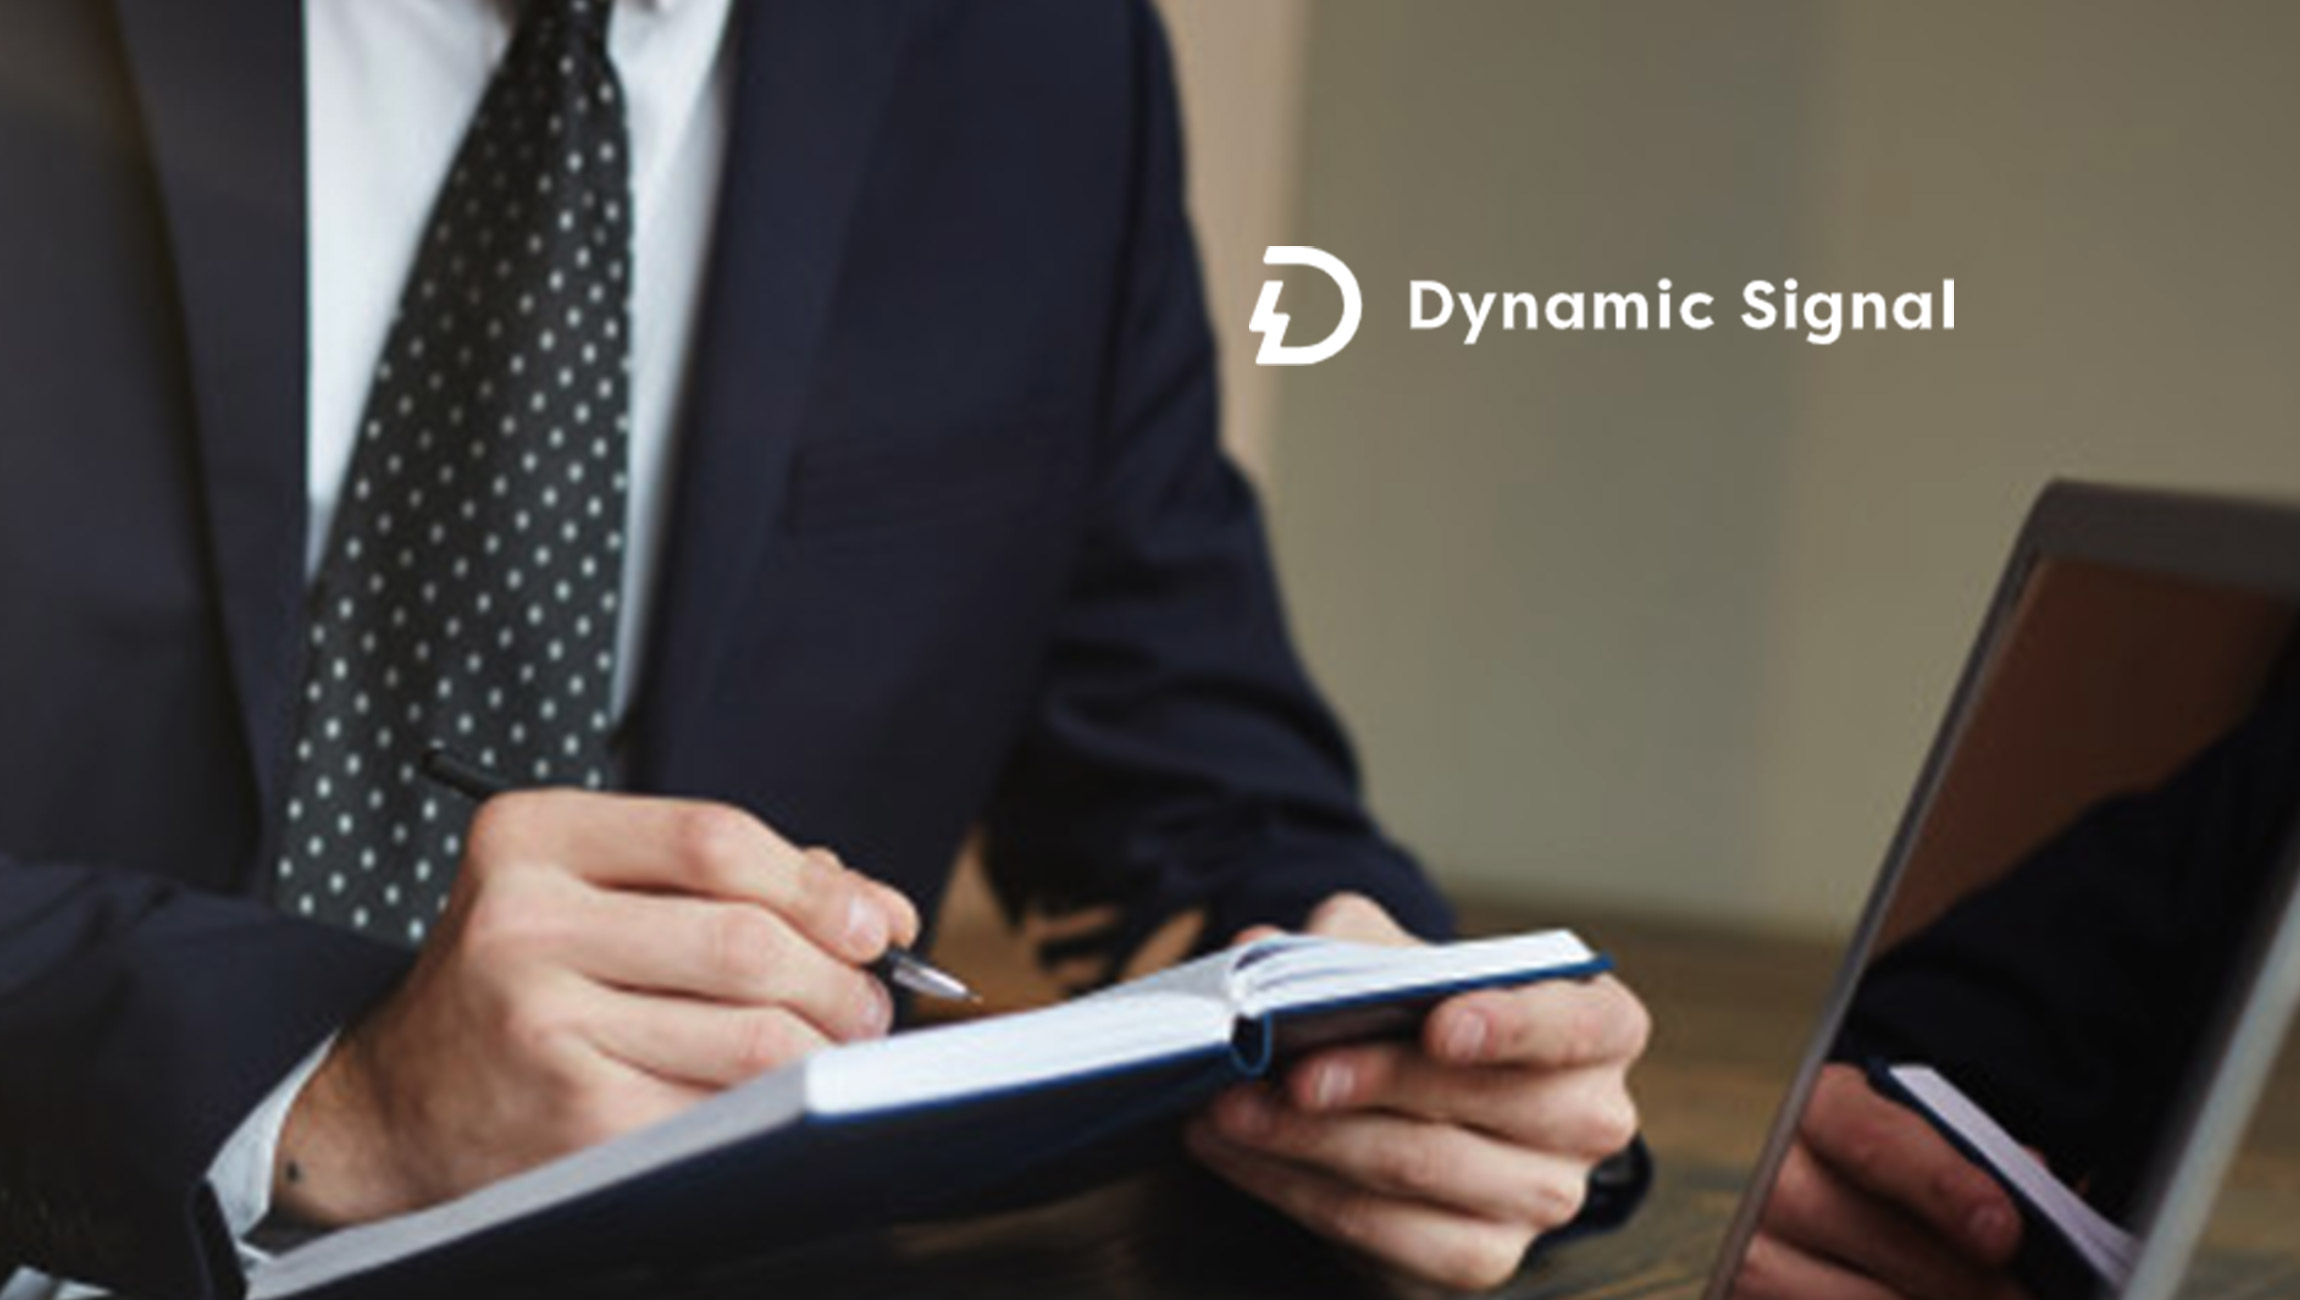 Dynamic Signal Announces Launch of Mobile Publisher, an Expanded Suite of Metrics, and Strategic Partnerships at Summit by Dynamic Signal